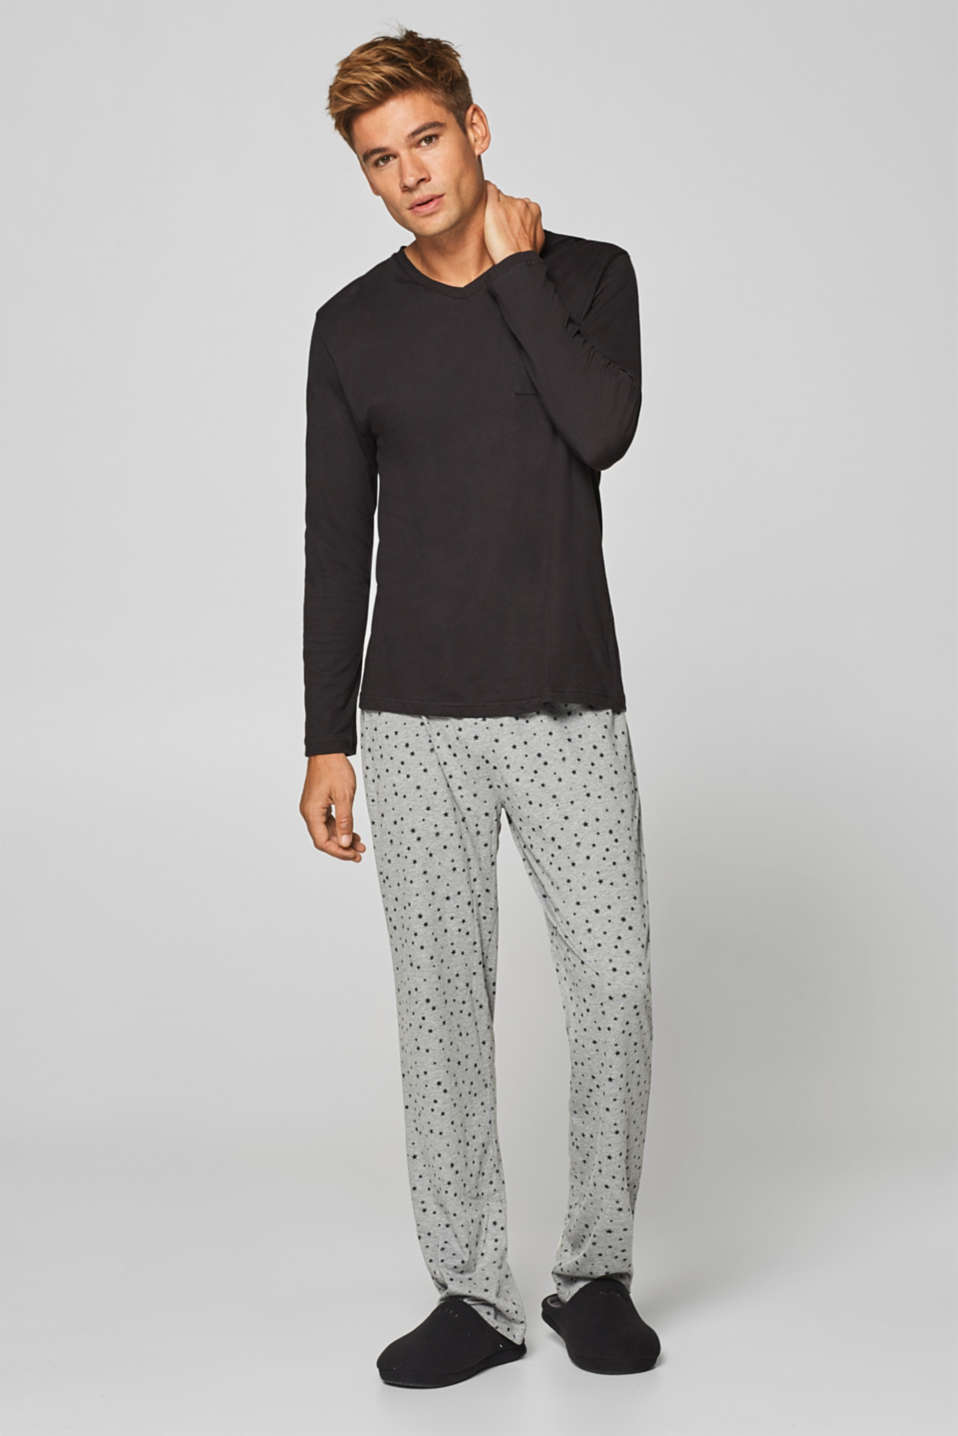 Esprit - Jersey pyjamas with stars